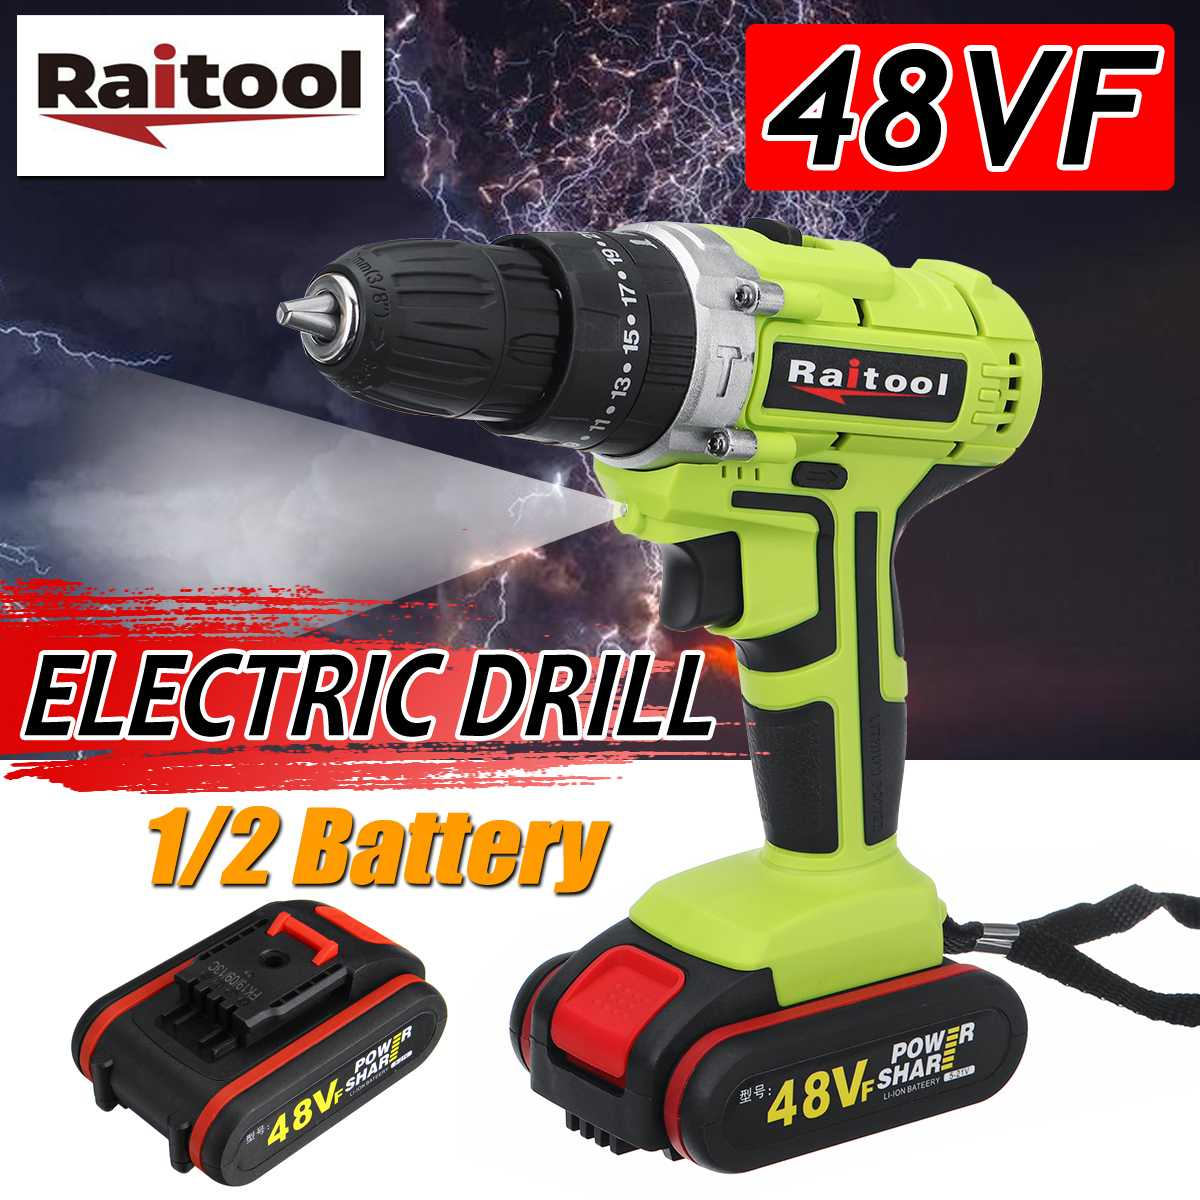 48V Cordless Electric Impact Drill Li-ion Battery LED Working Light 25+3 Torque Screwdriver DIY Home Hand Flat Drill Power Tools